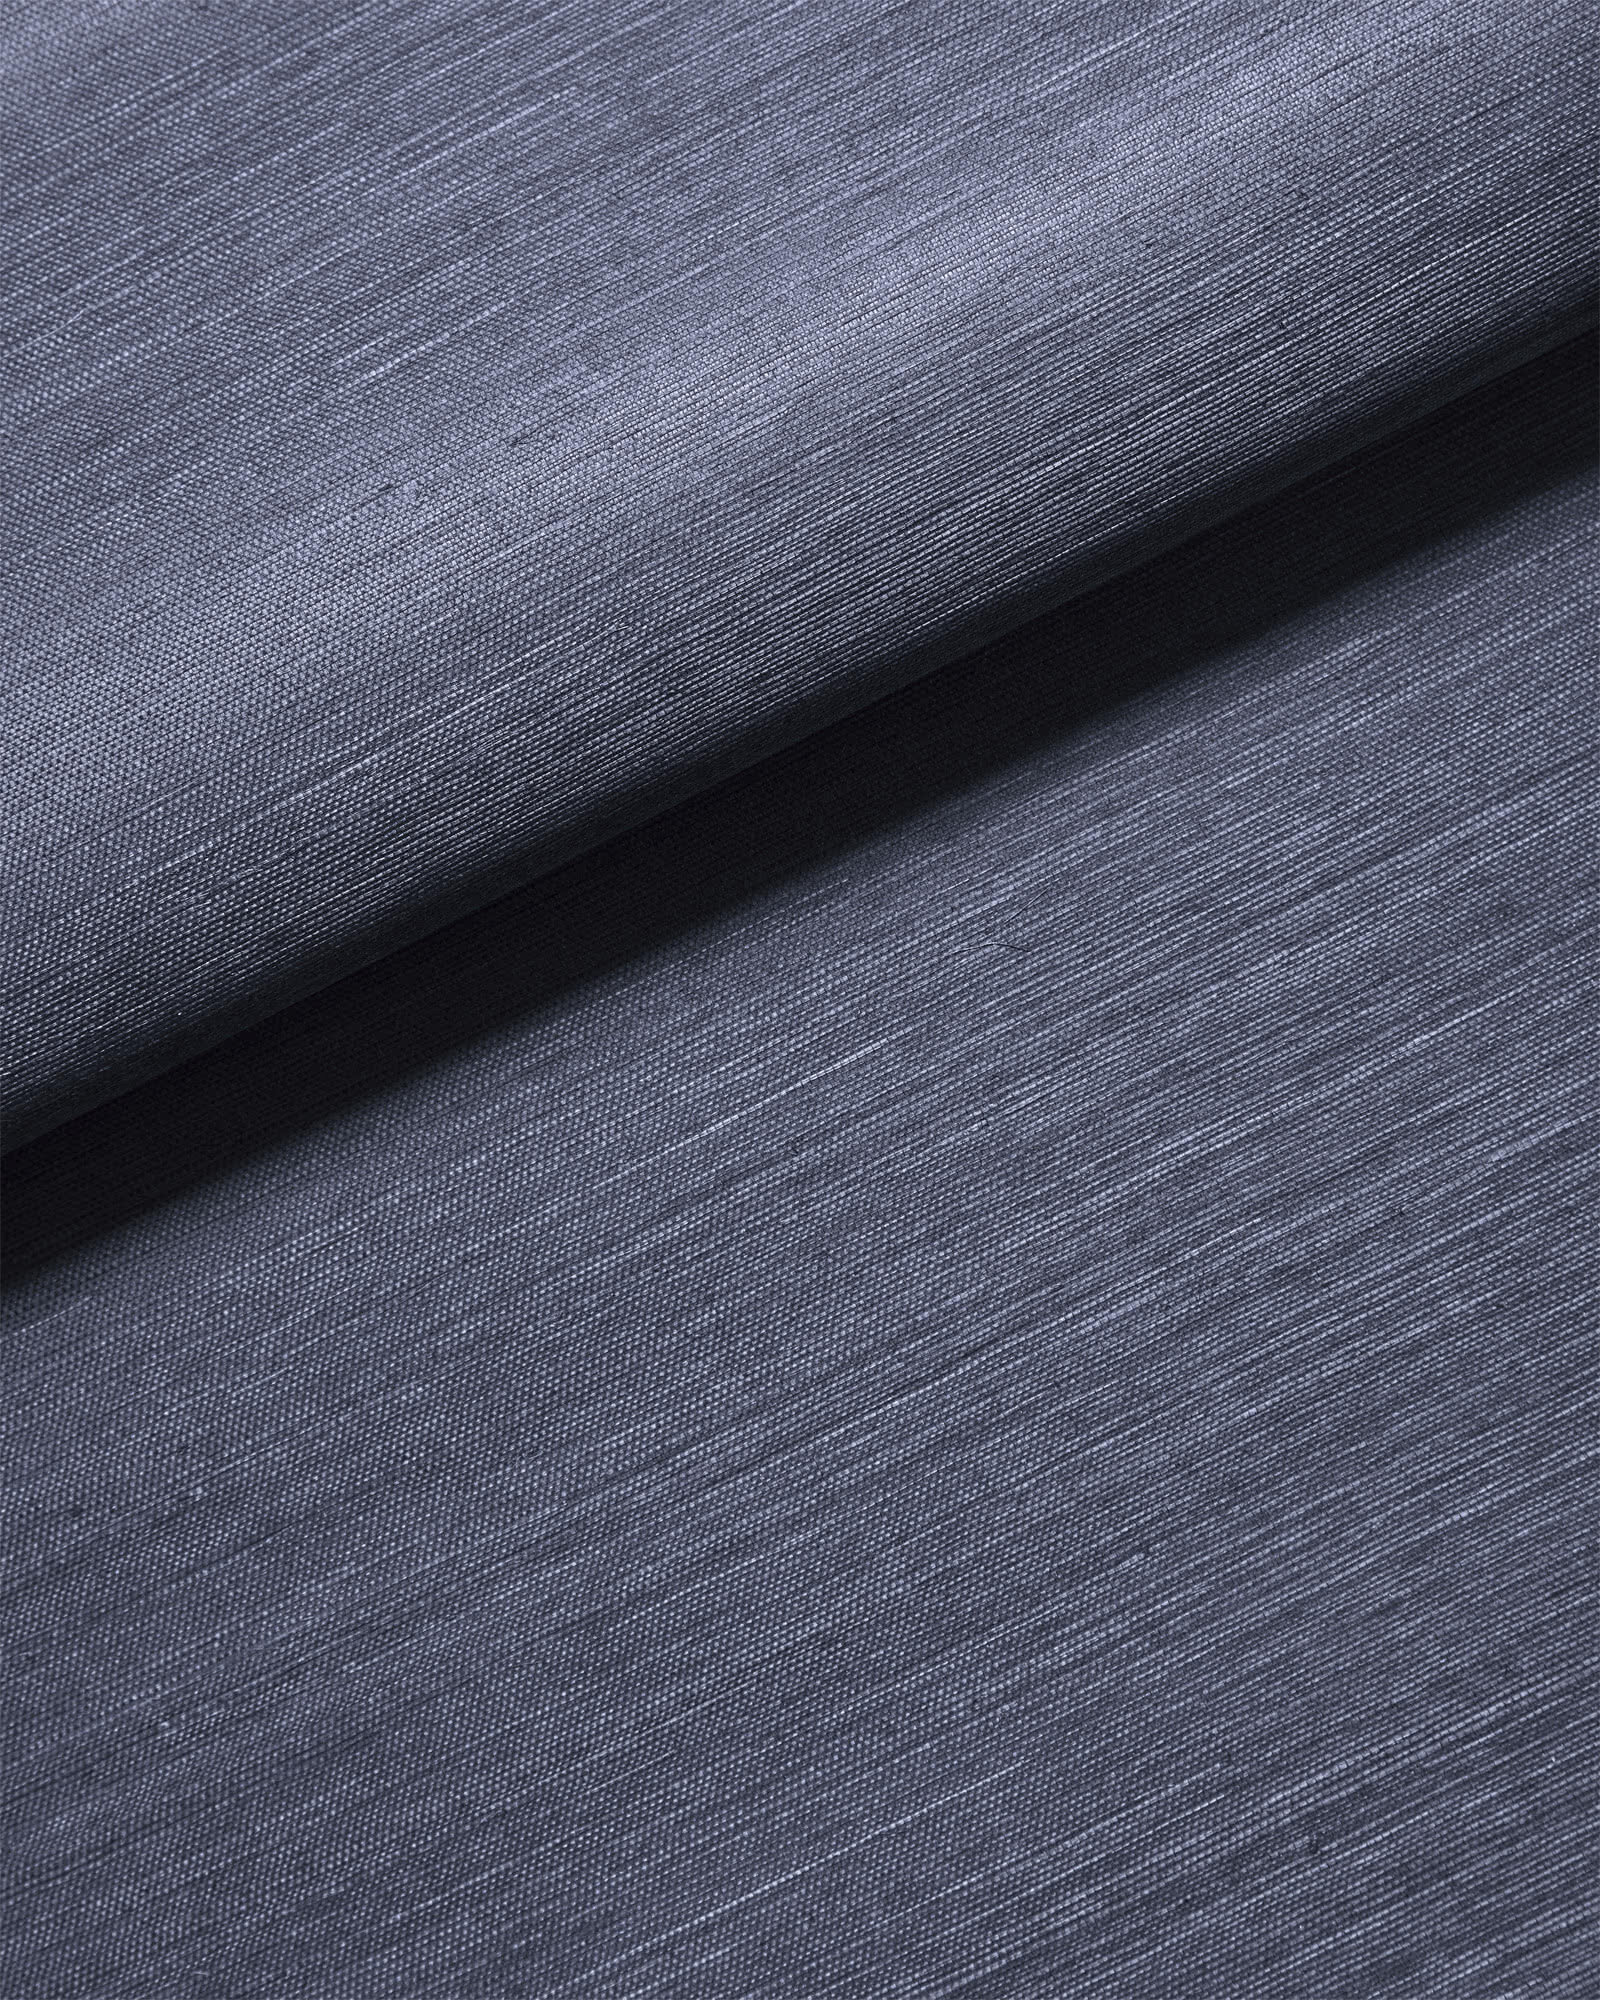 Wallpaper_Grasscloth_Navy_MV_Crop_BASE.jpg